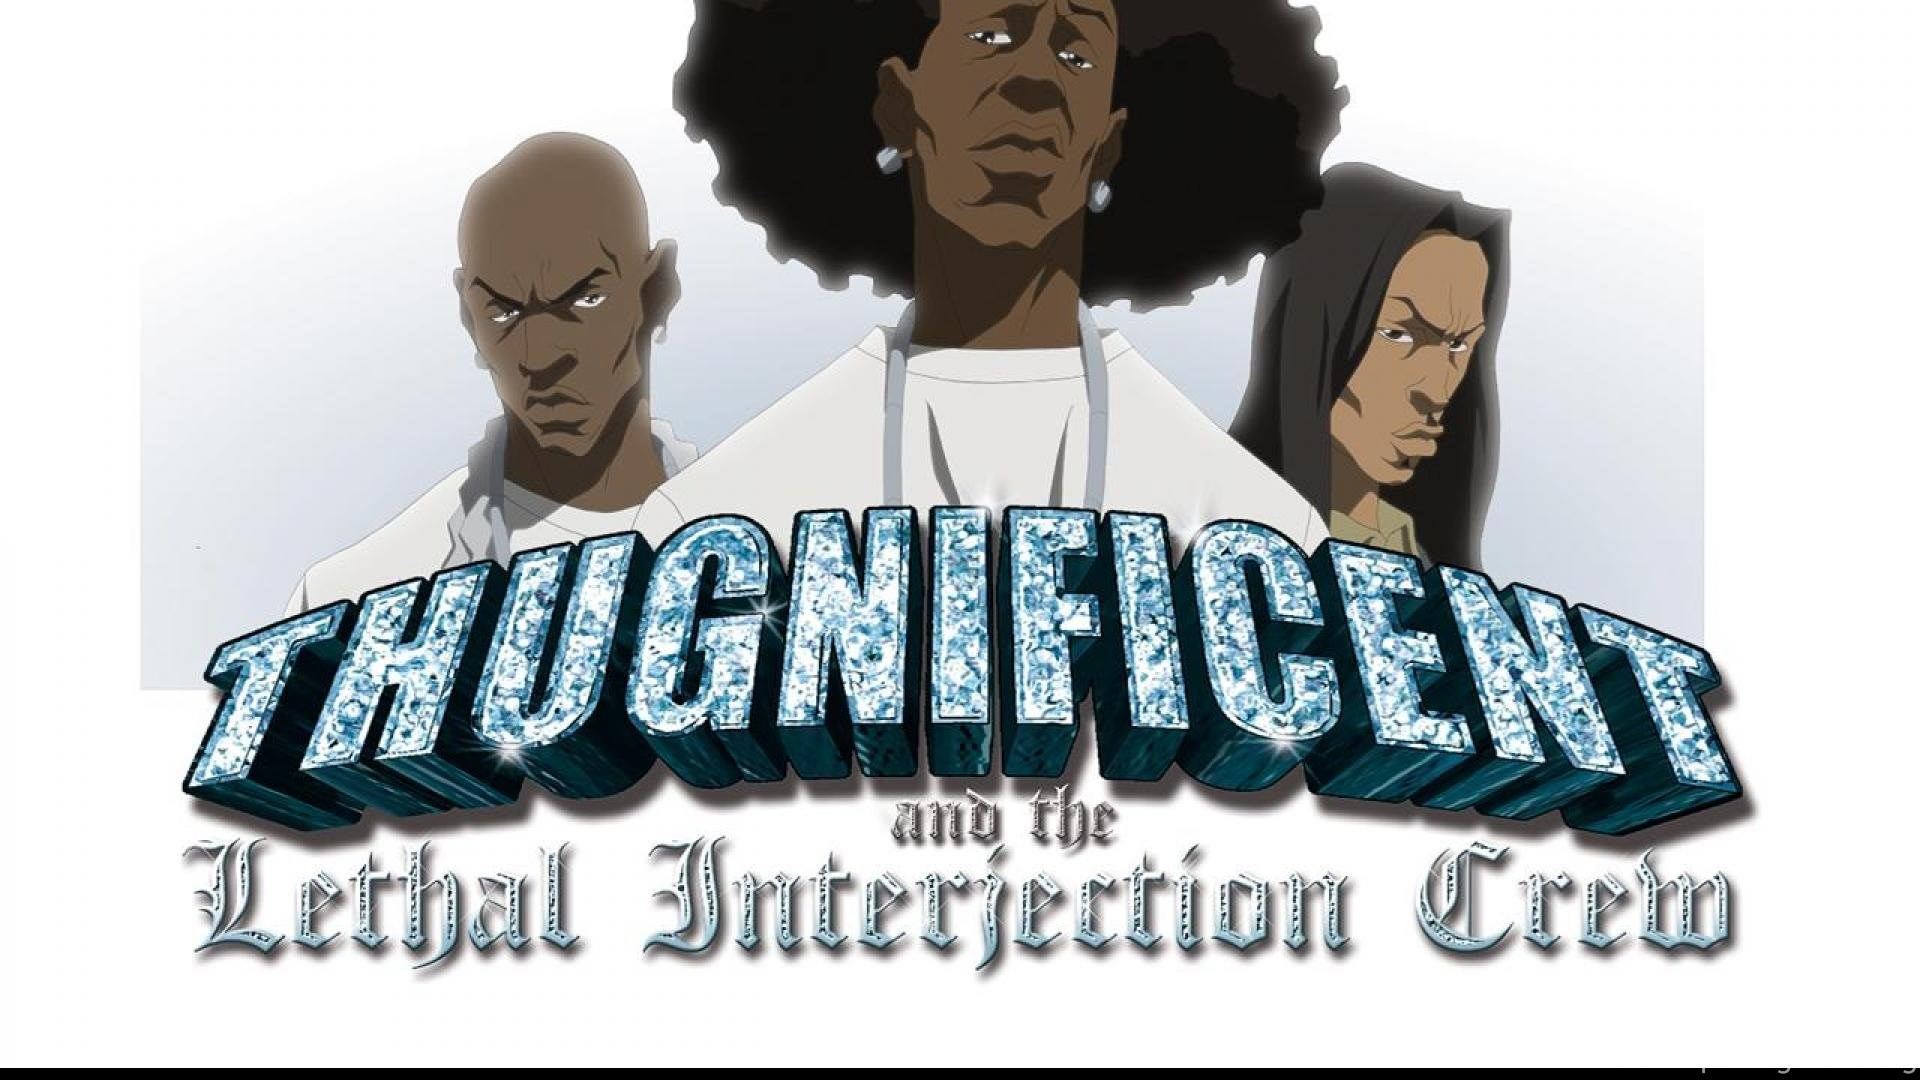 Download Free HQ Boondocks Wallpapers Hqwallbasepw Desktop Background